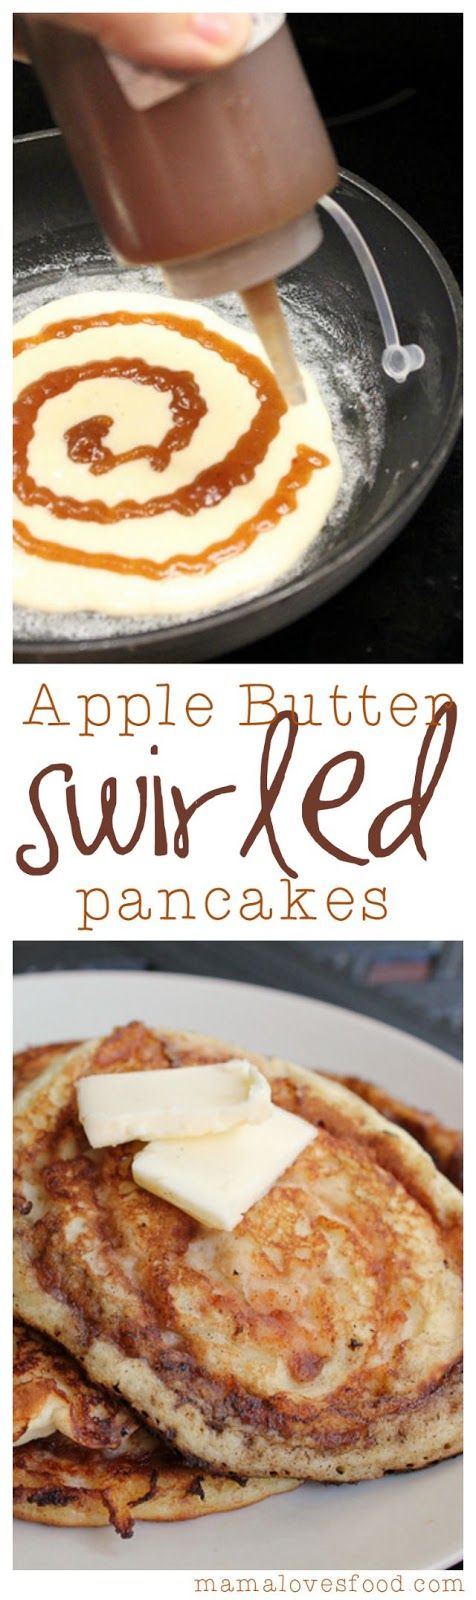 Apple Butter Swirled Pancakes.